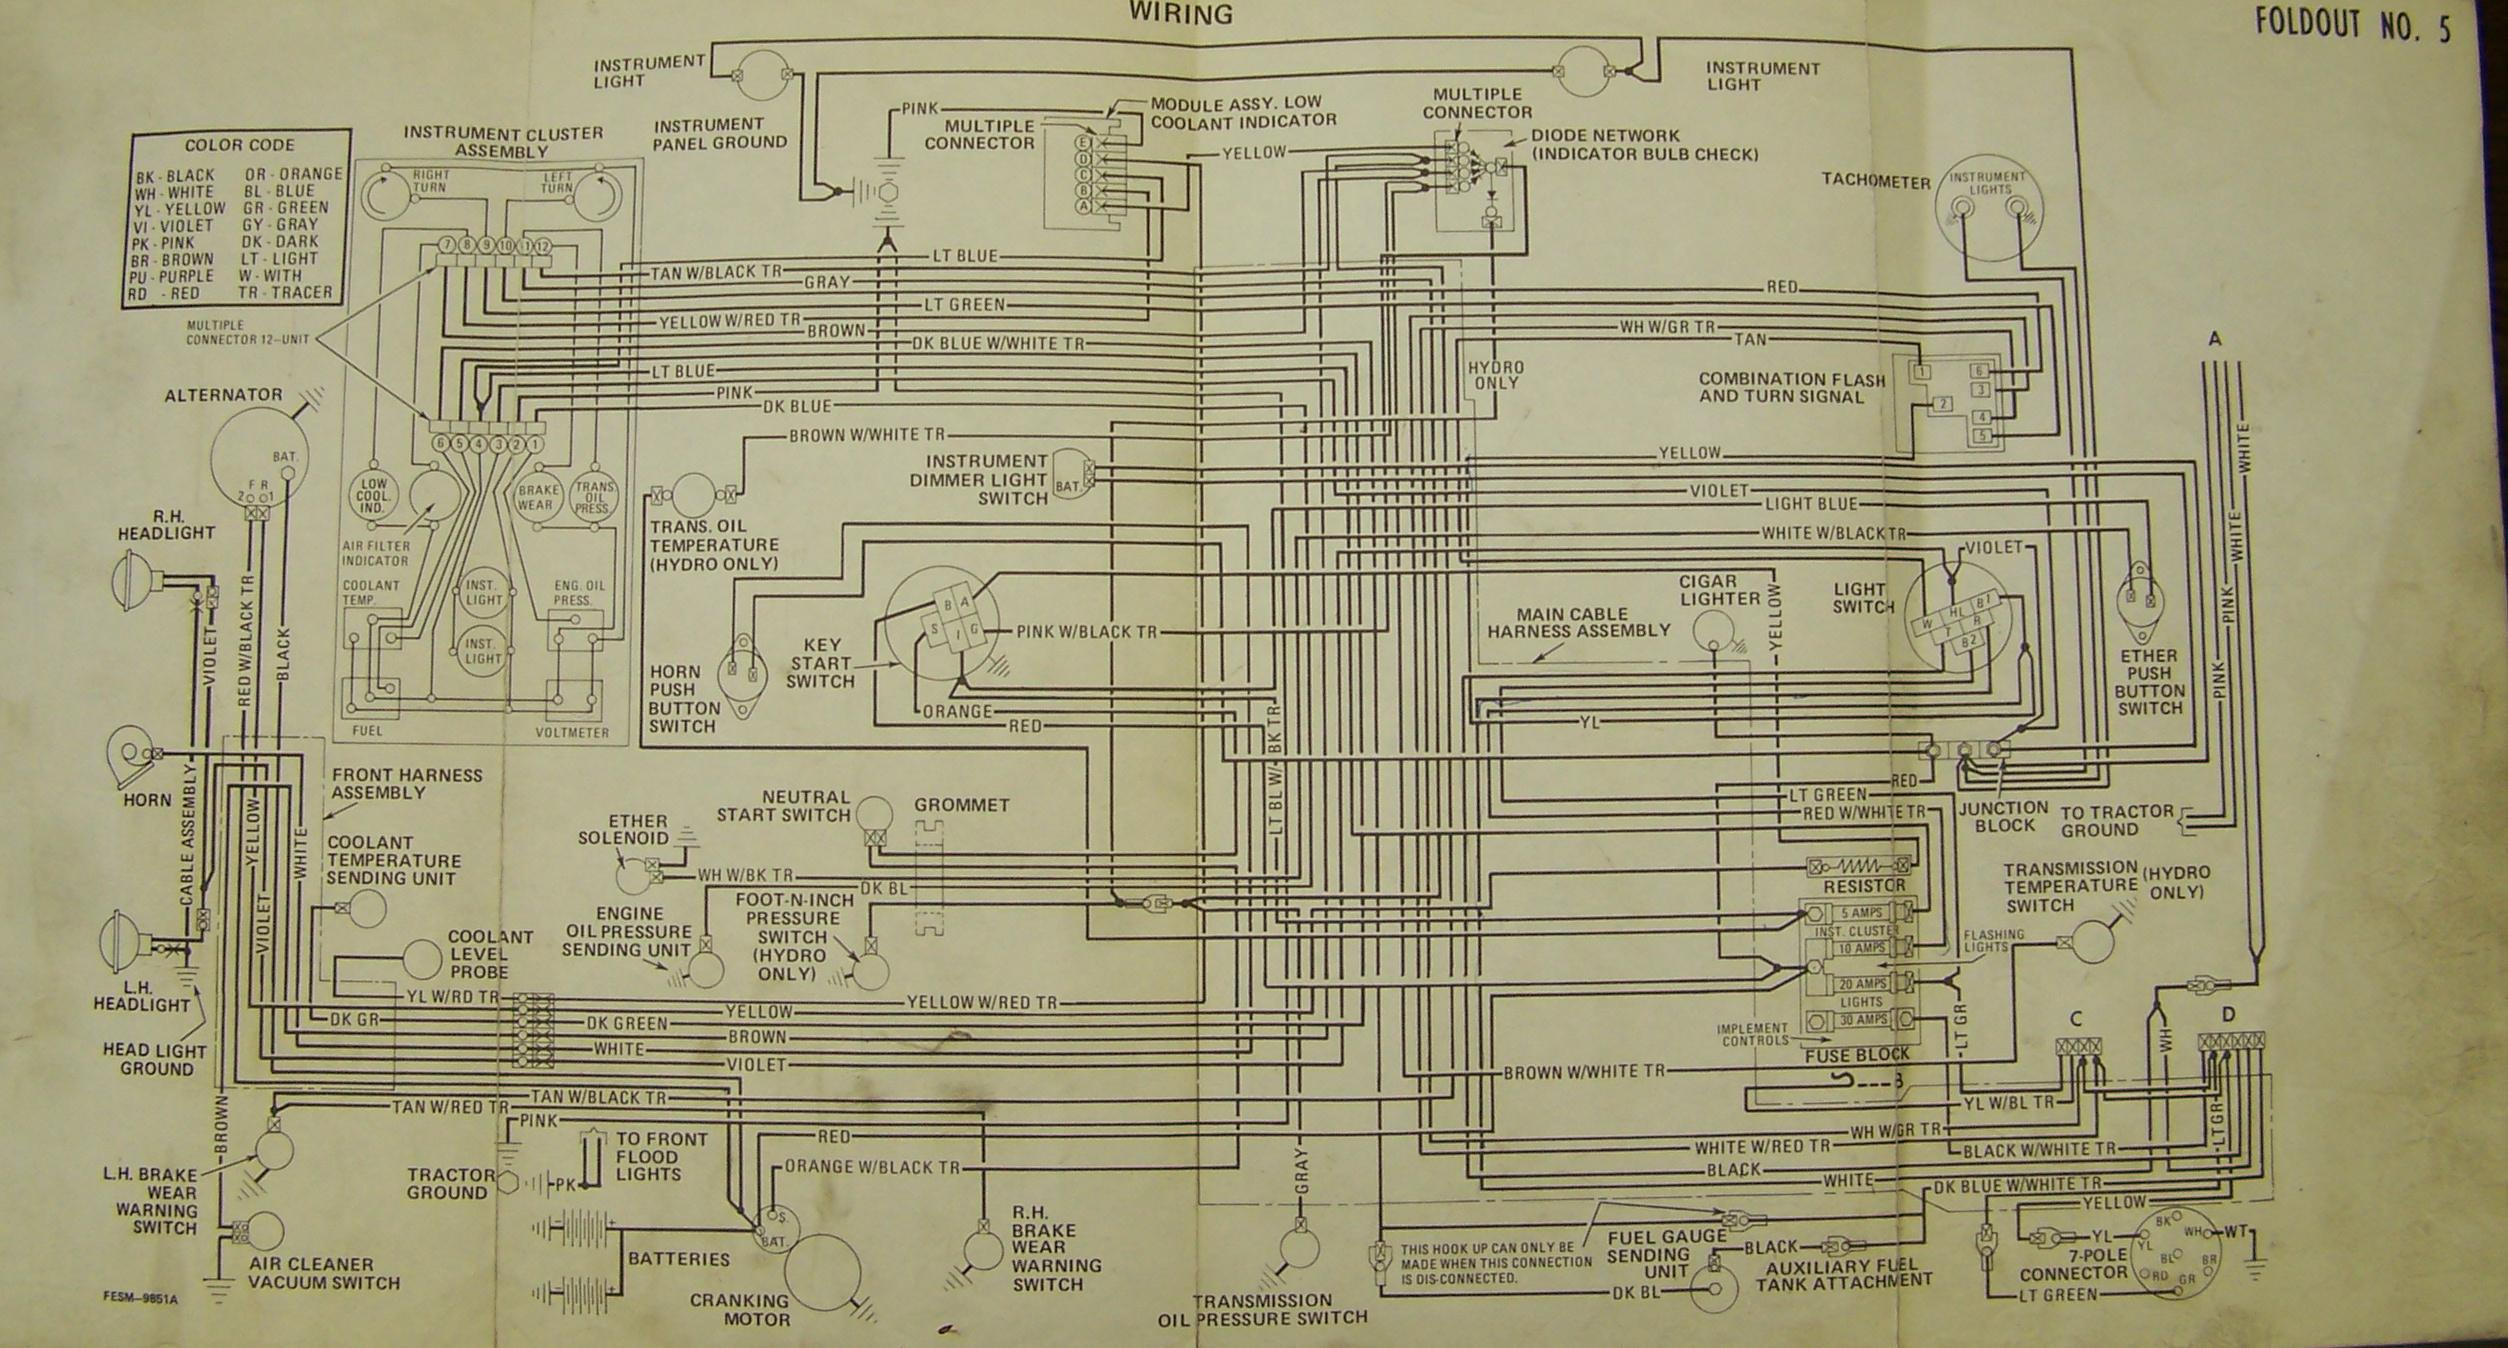 86series5 ih tractor wiring diagram ih tractor power steering \u2022 free wiring Farmall 12 Volt Wiring Diagram at bayanpartner.co